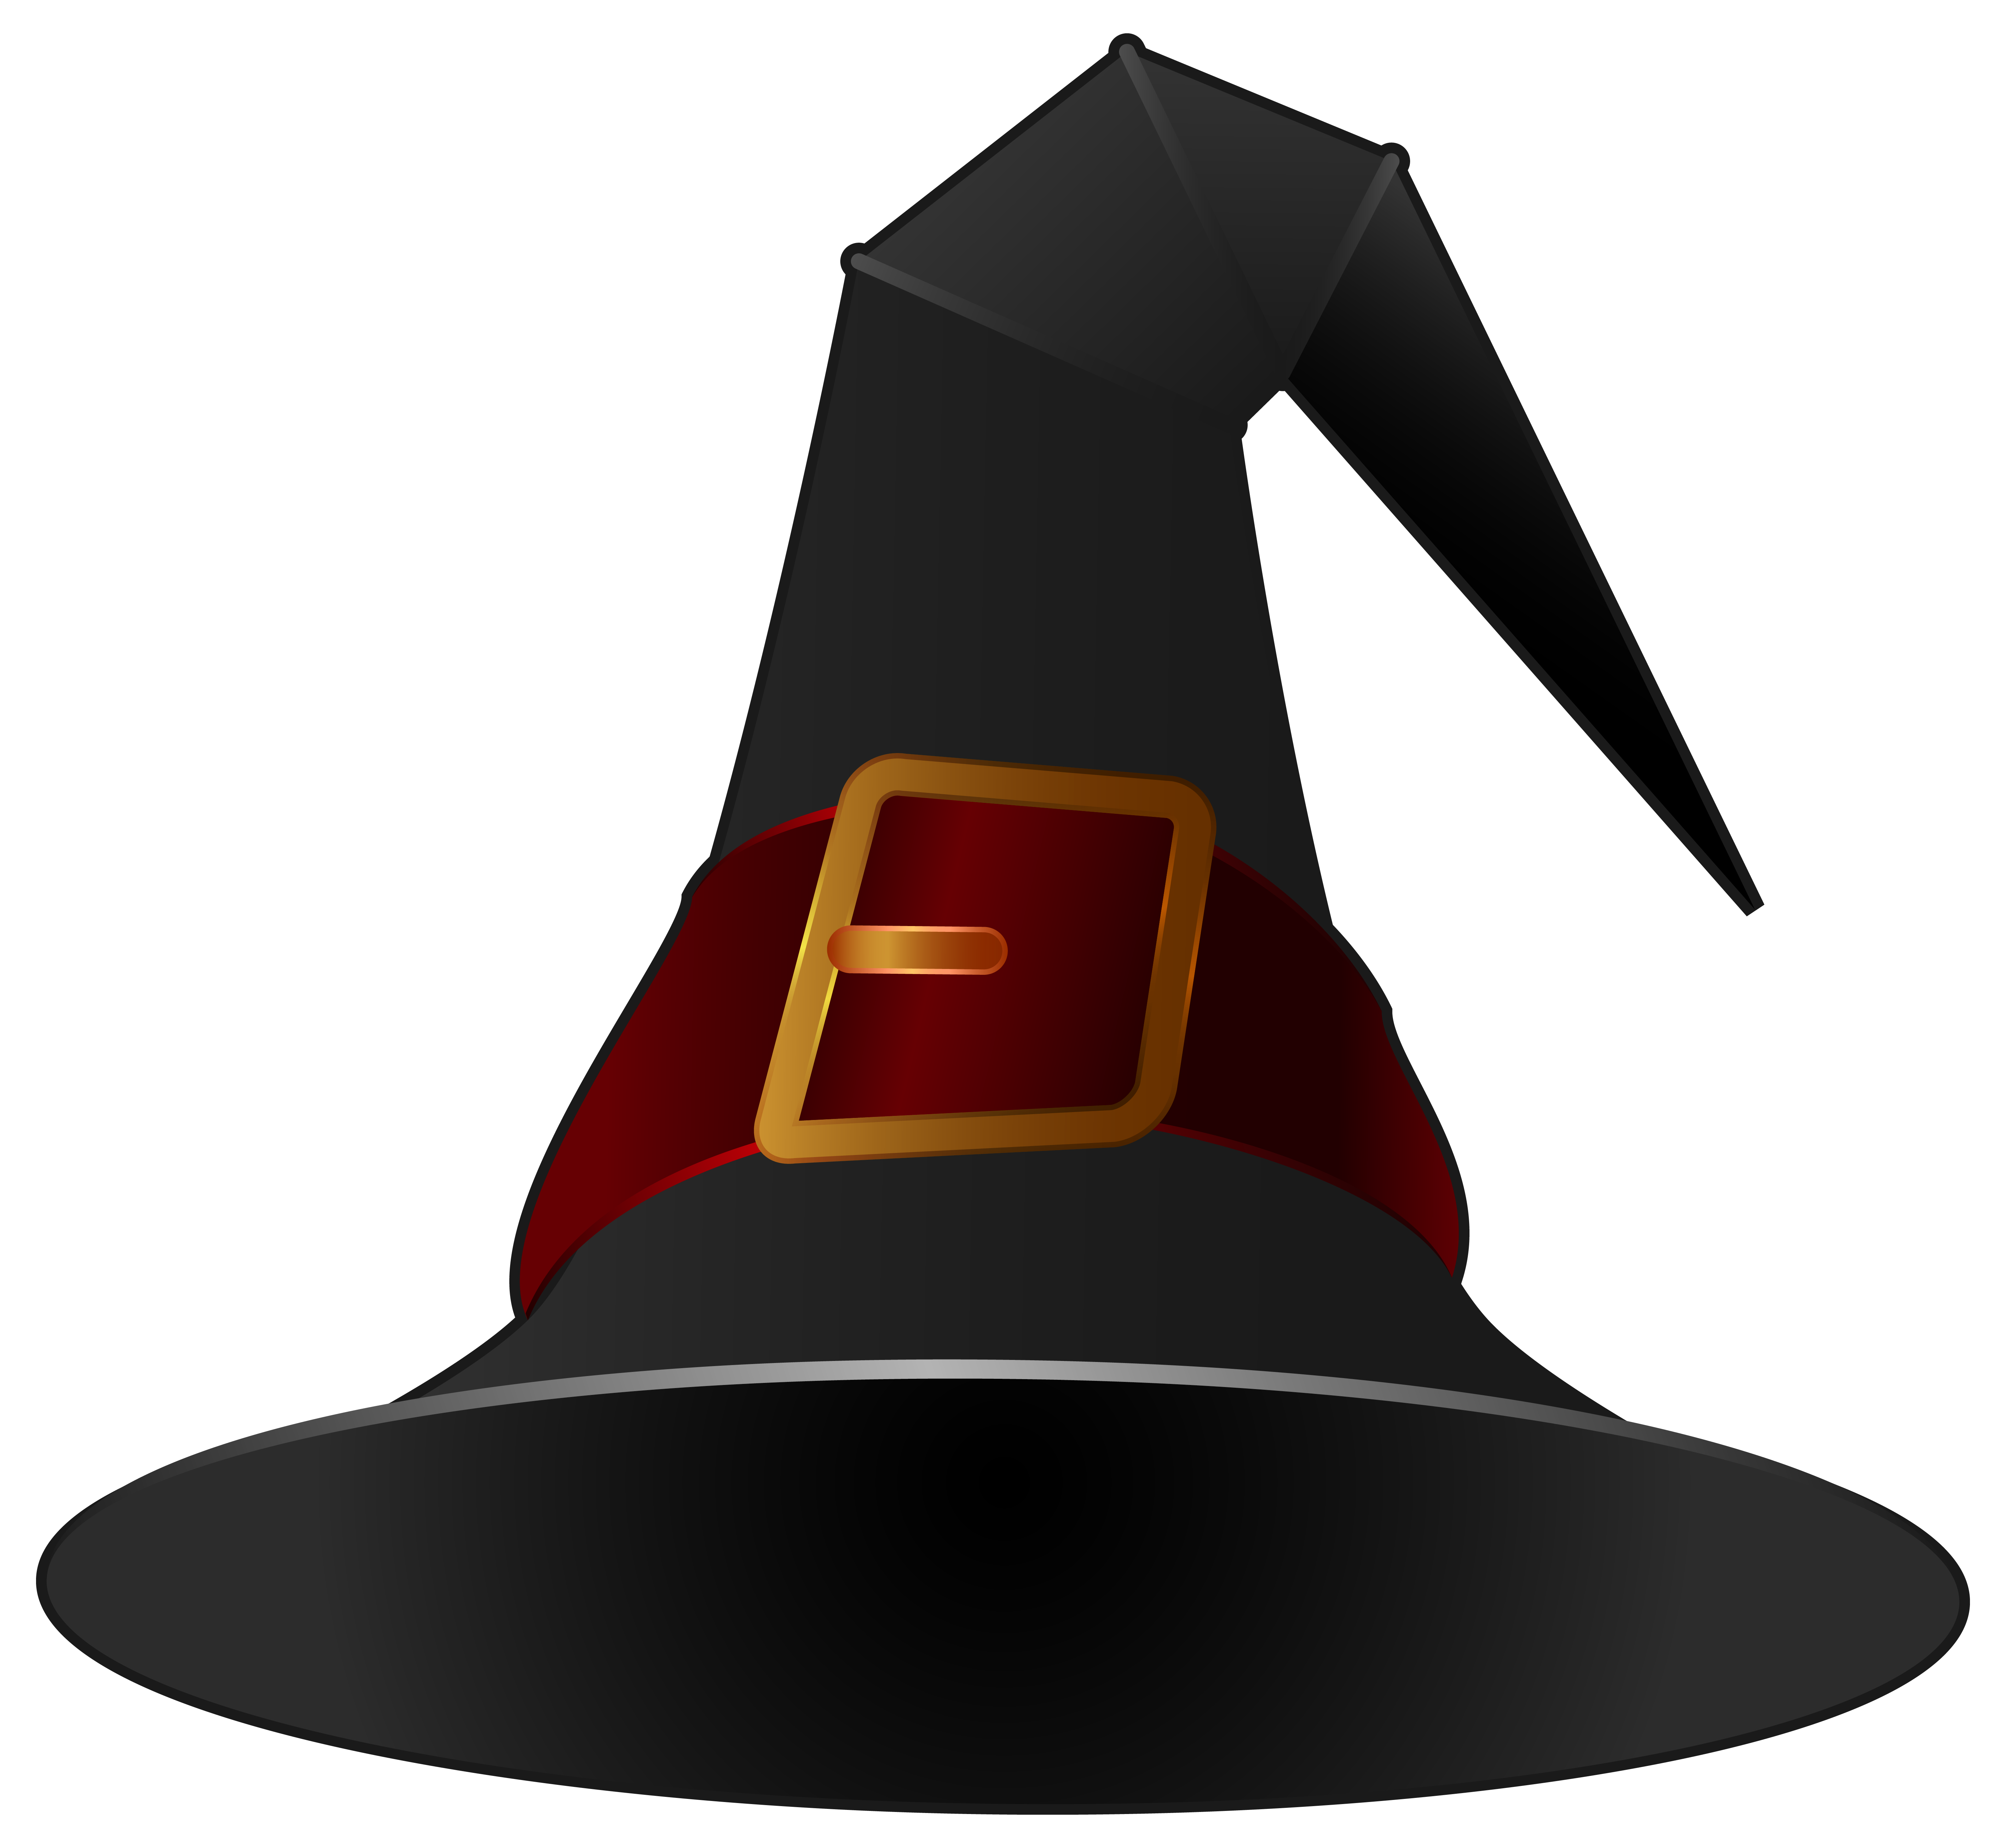 witches hat png